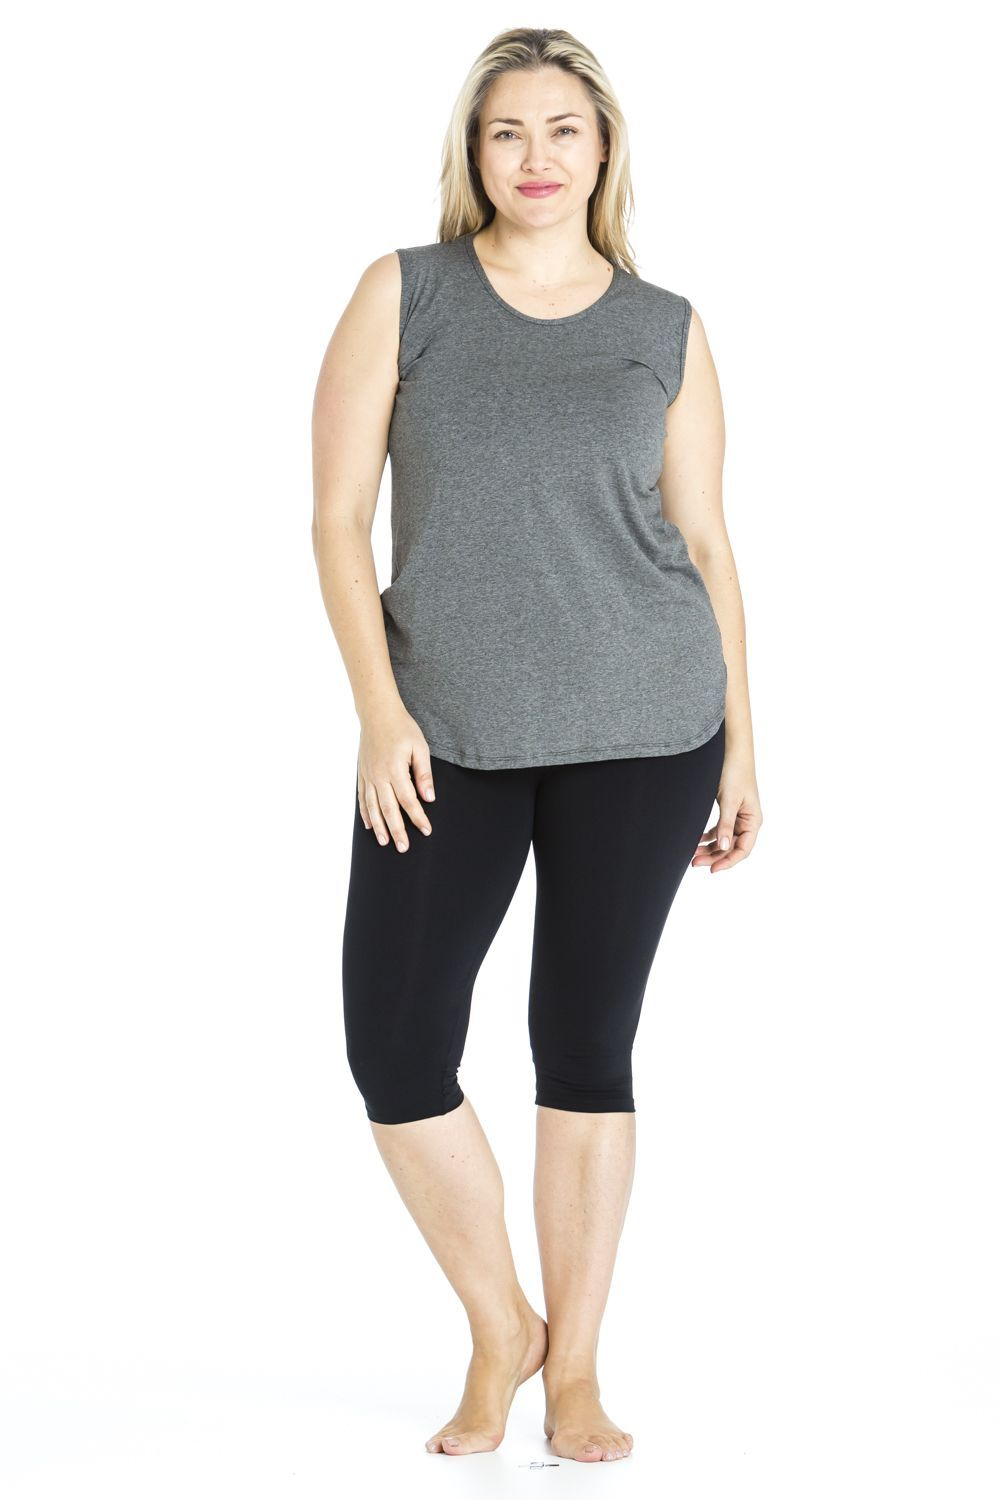 A workout top that is comfortable and versatile. Wear for